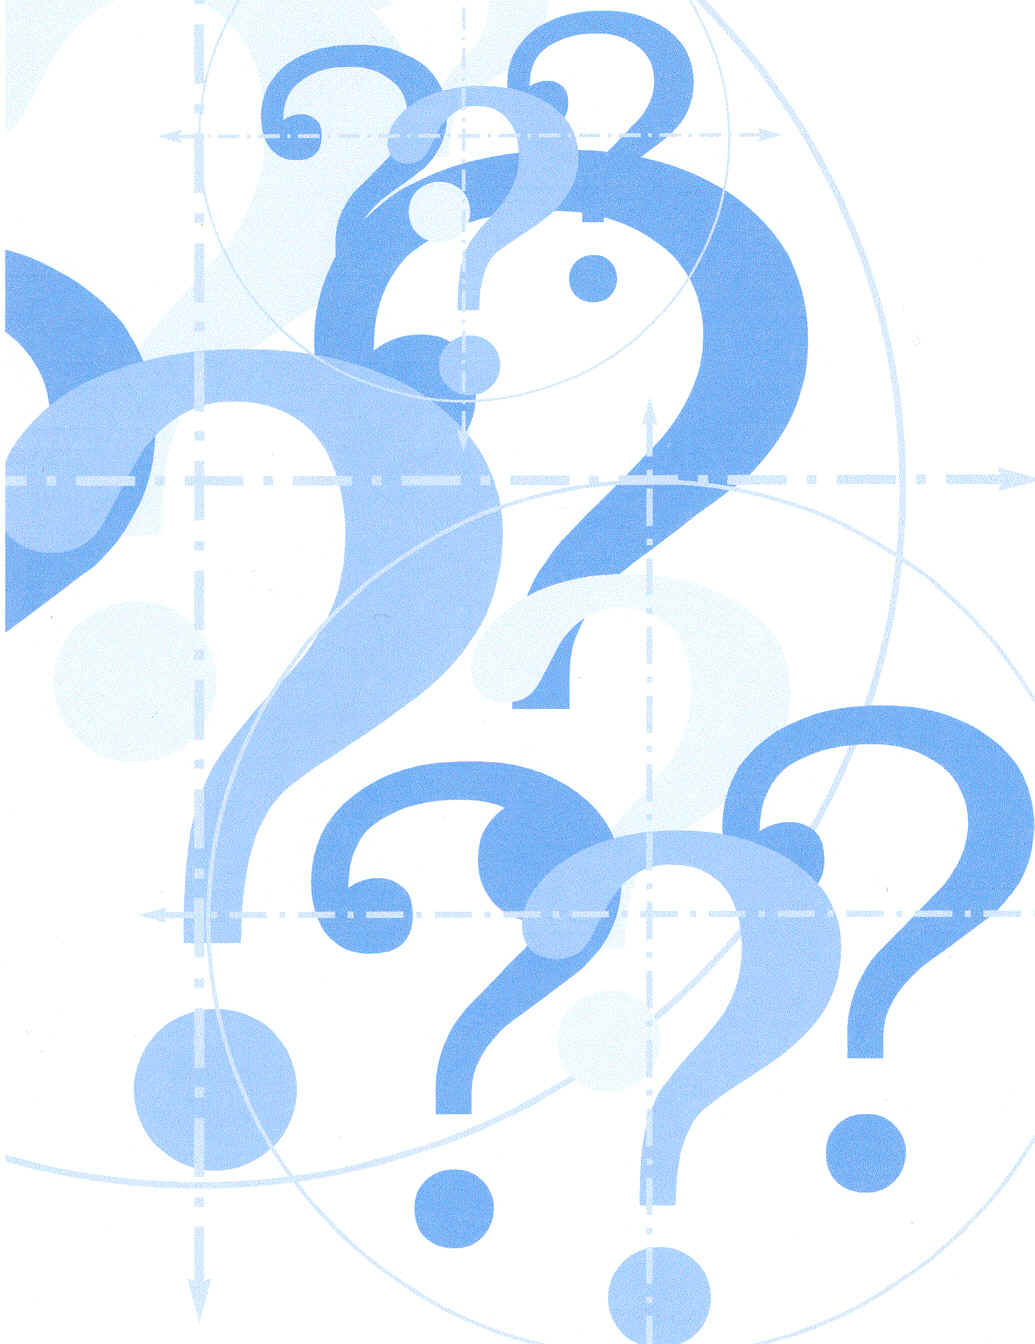 clip art free Marks clipart light blue. Sky cool question what.